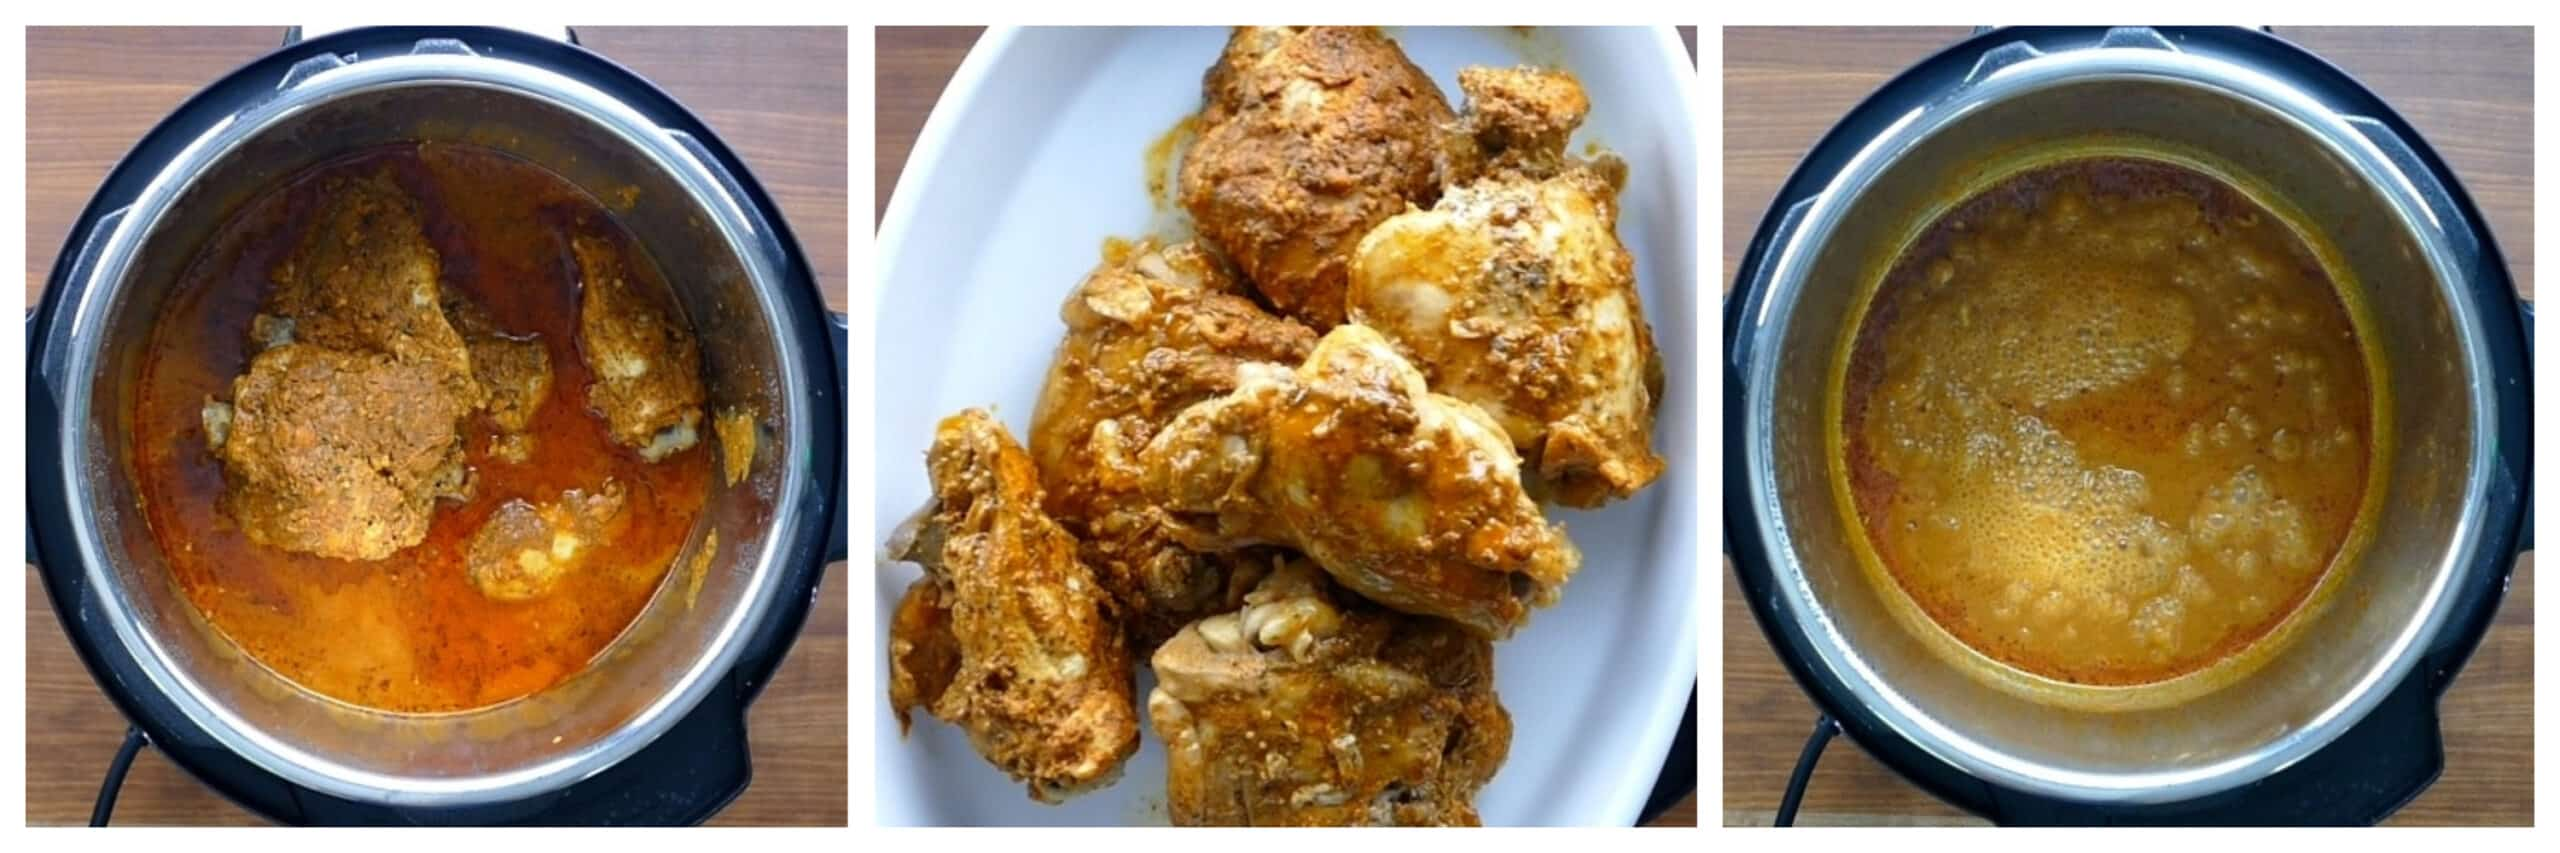 Instant Pot peri peri chicken instructions collage - cooked chicken in inner pot, chicken on platter, sauce being boiled